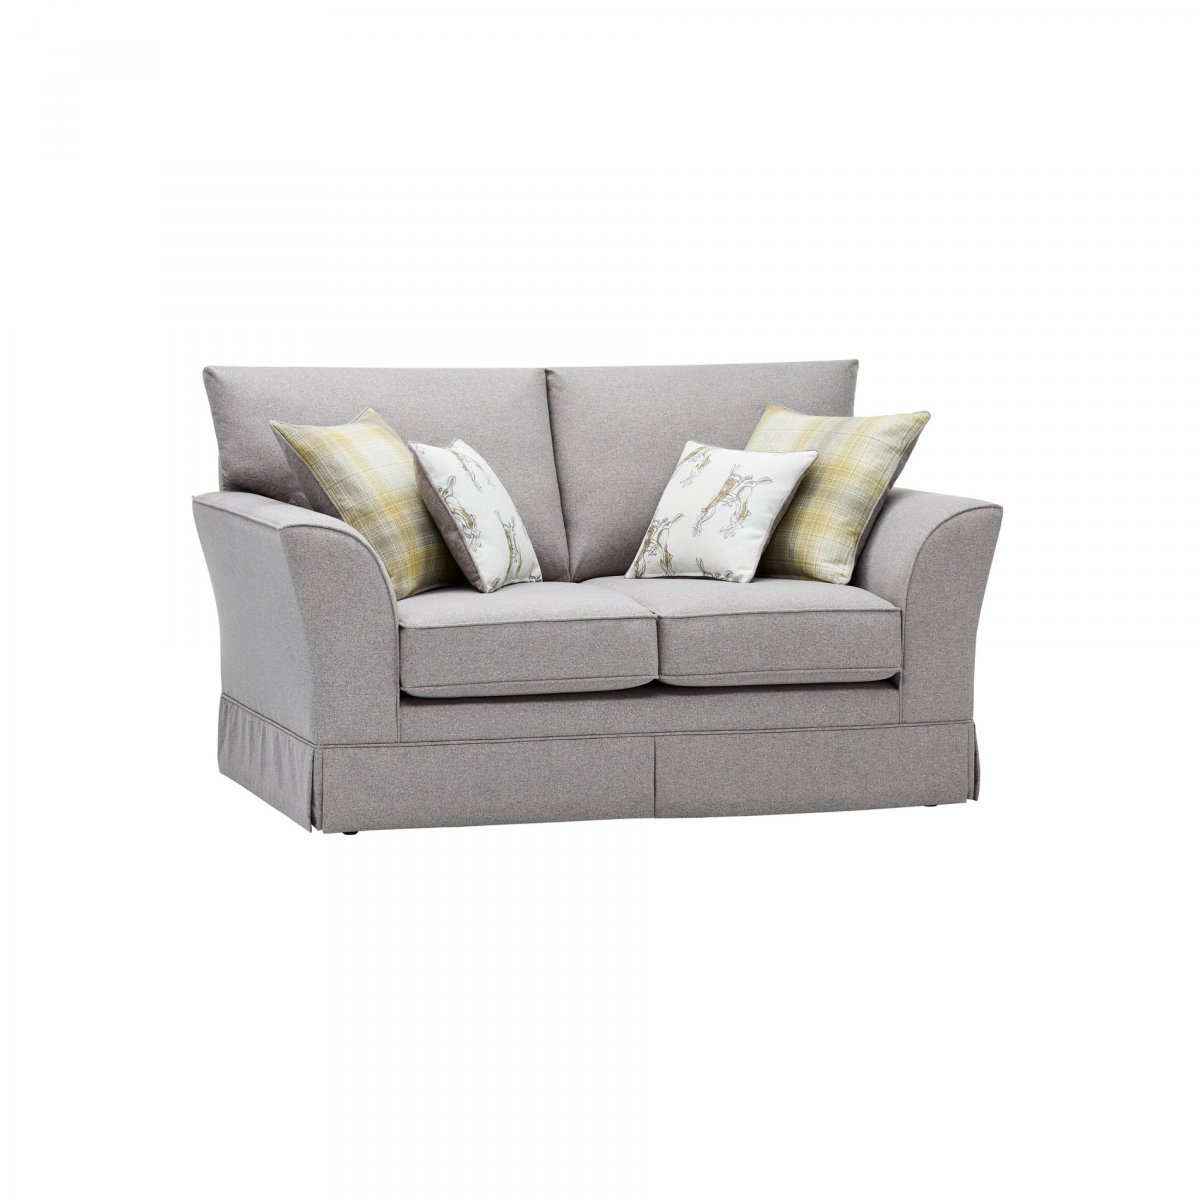 liberty sofa and motion loveseat sofas unlimited harrisburg pa 2 seater in hawkshead grey fabric